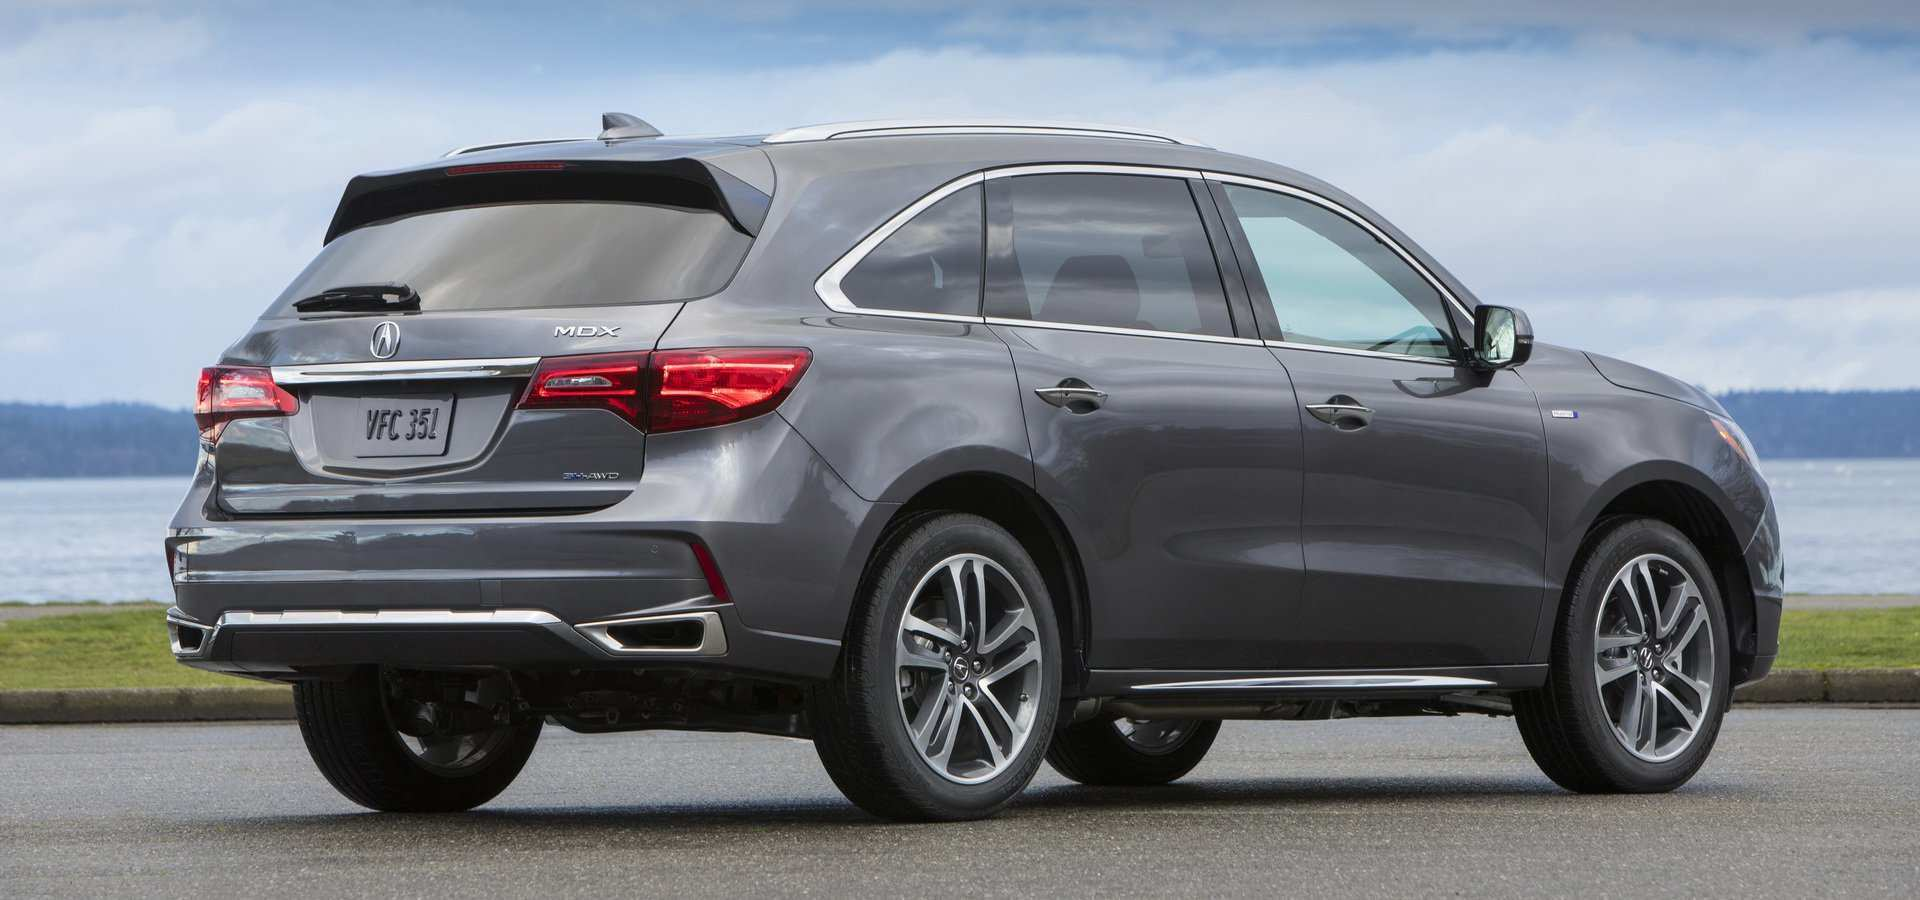 39 Best Acura Mdx 2020 Release Price And Review